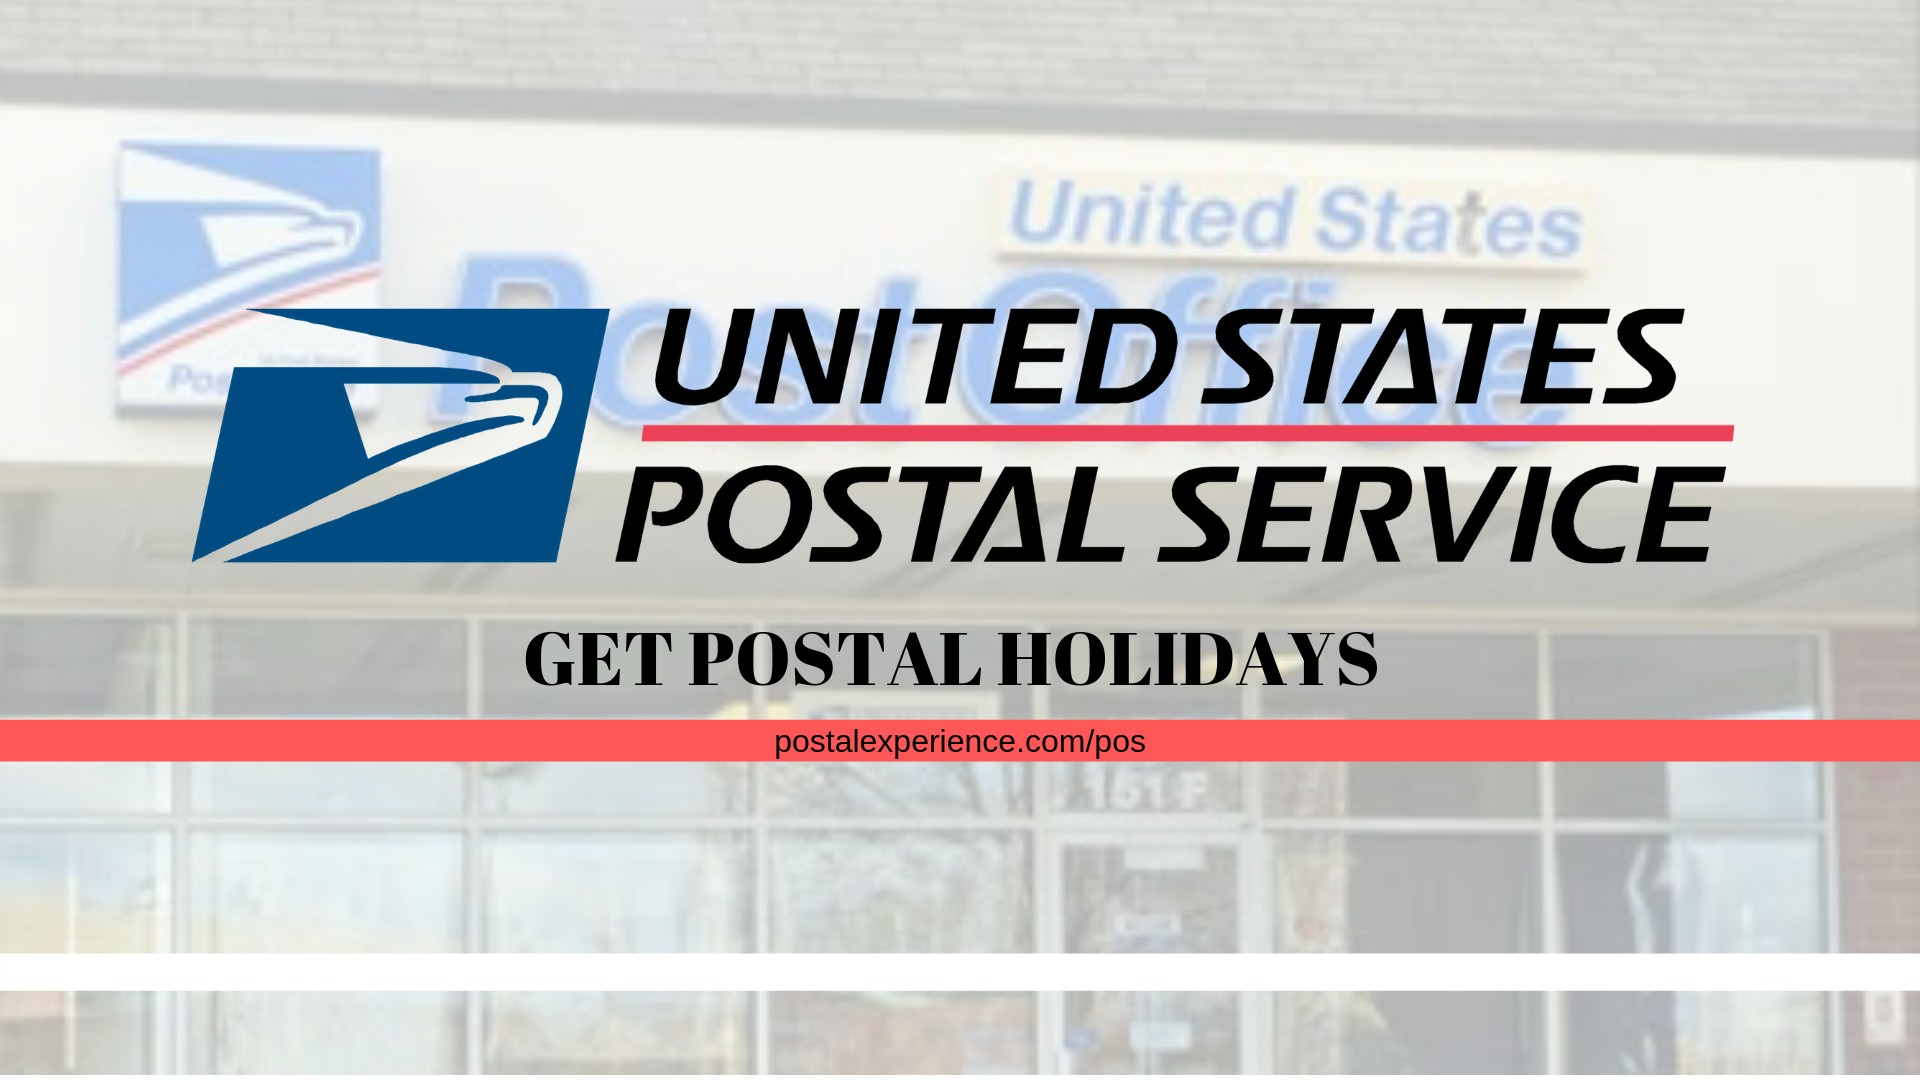 Postalexperience: Official USPS Customer Satisfaction Survey At www.PostalExperience.com/POS